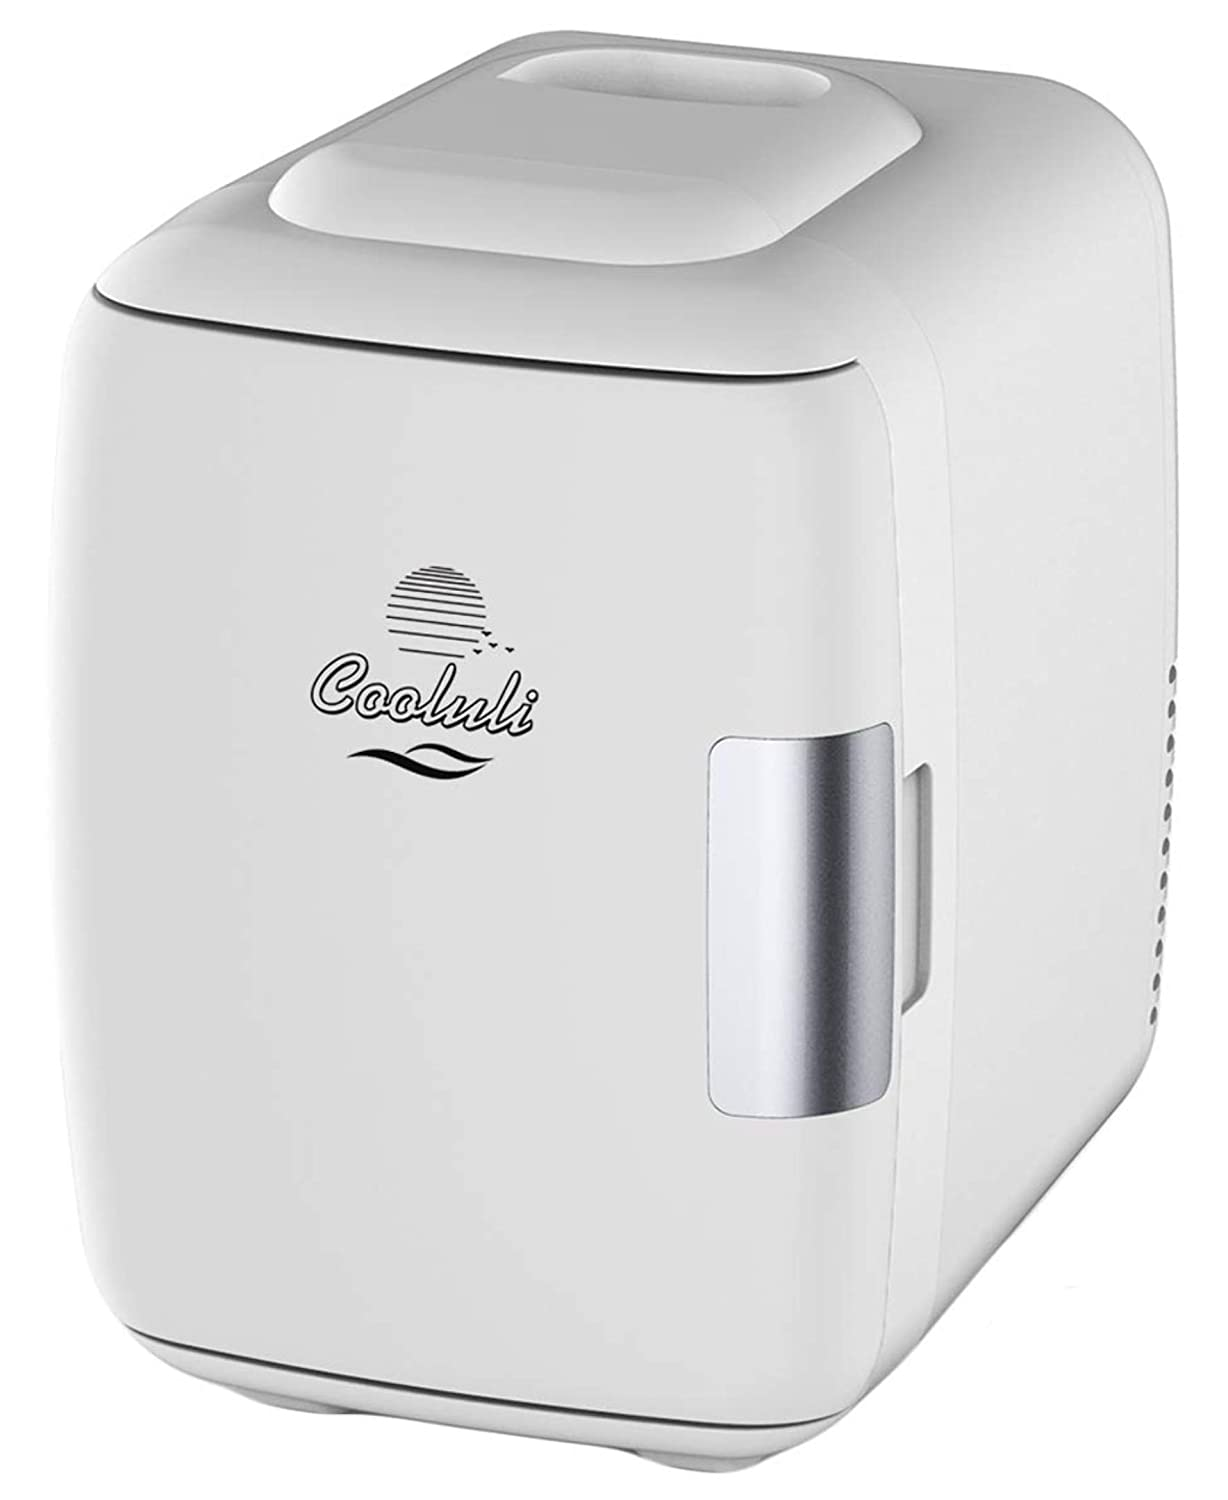 Cooluli Mini Fridge Electric Cooler and Warmer (4 Liter / 6 Can): AC/DC Portable Thermoelectric System w/ Exclusive On the Go USB Power Bank Option ...